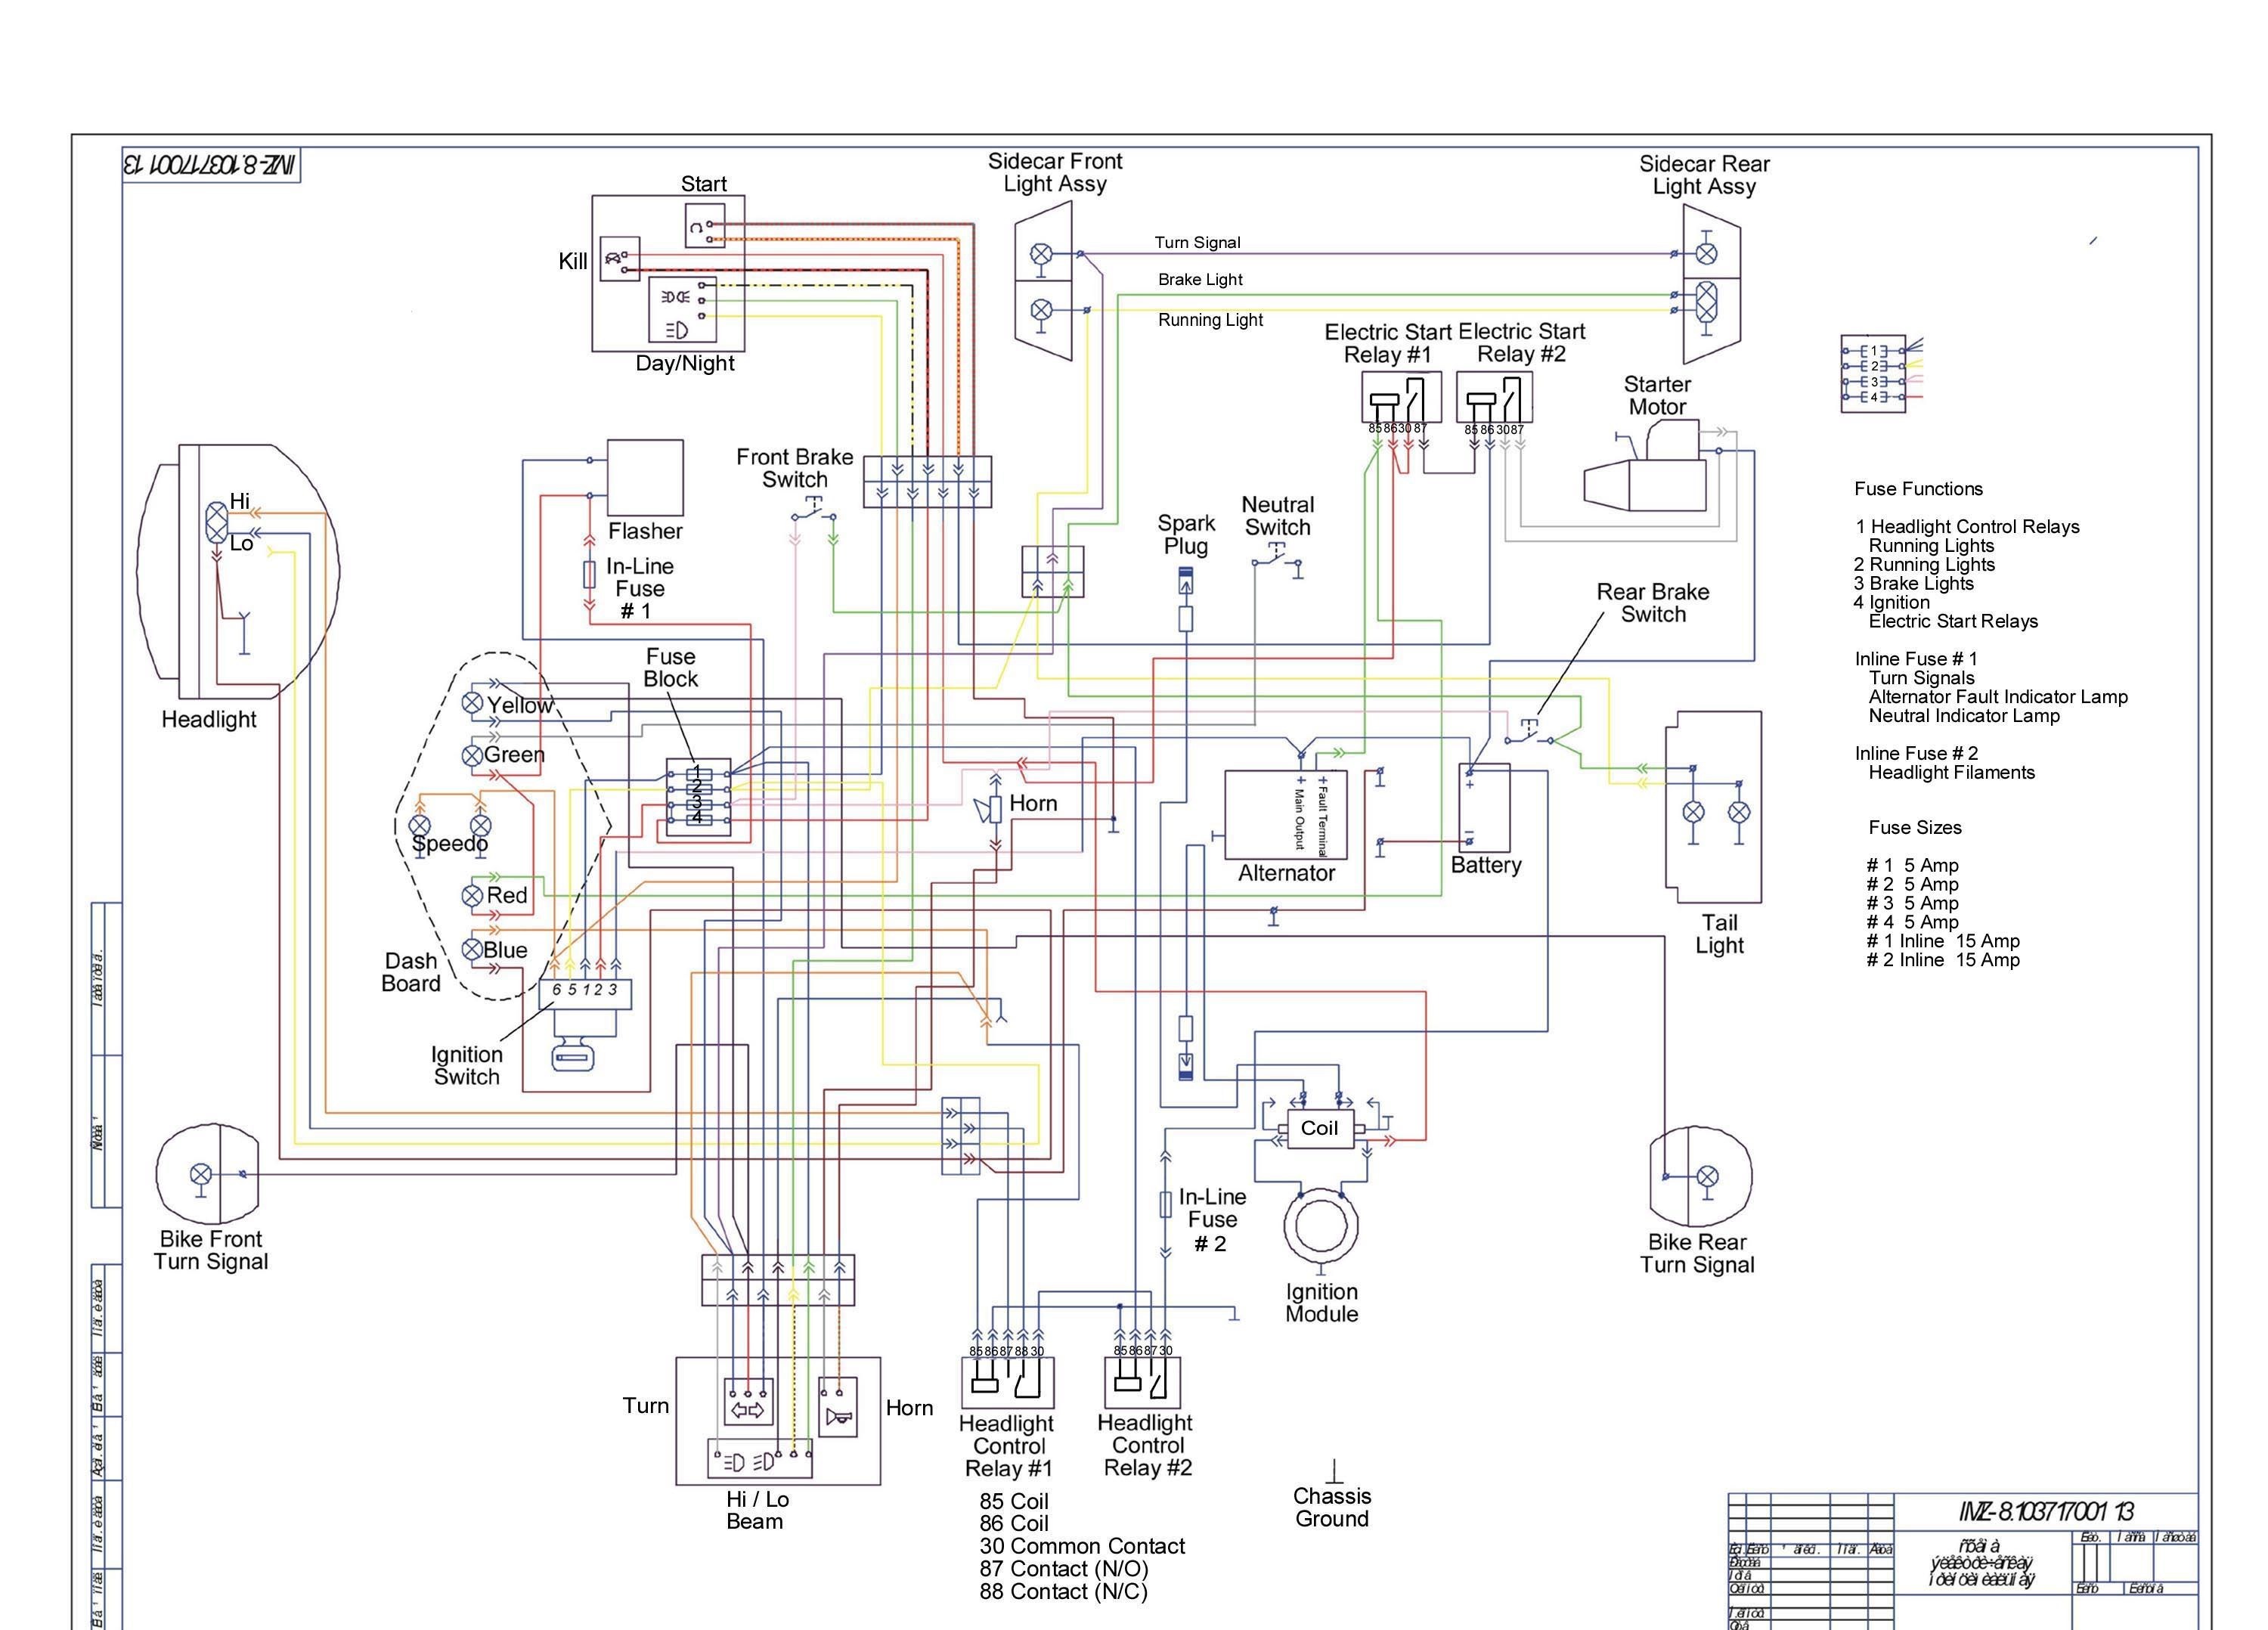 Mustang Wiring Schematic Auto Electrical Diagram 65 Hyster 30 Forklift Mast